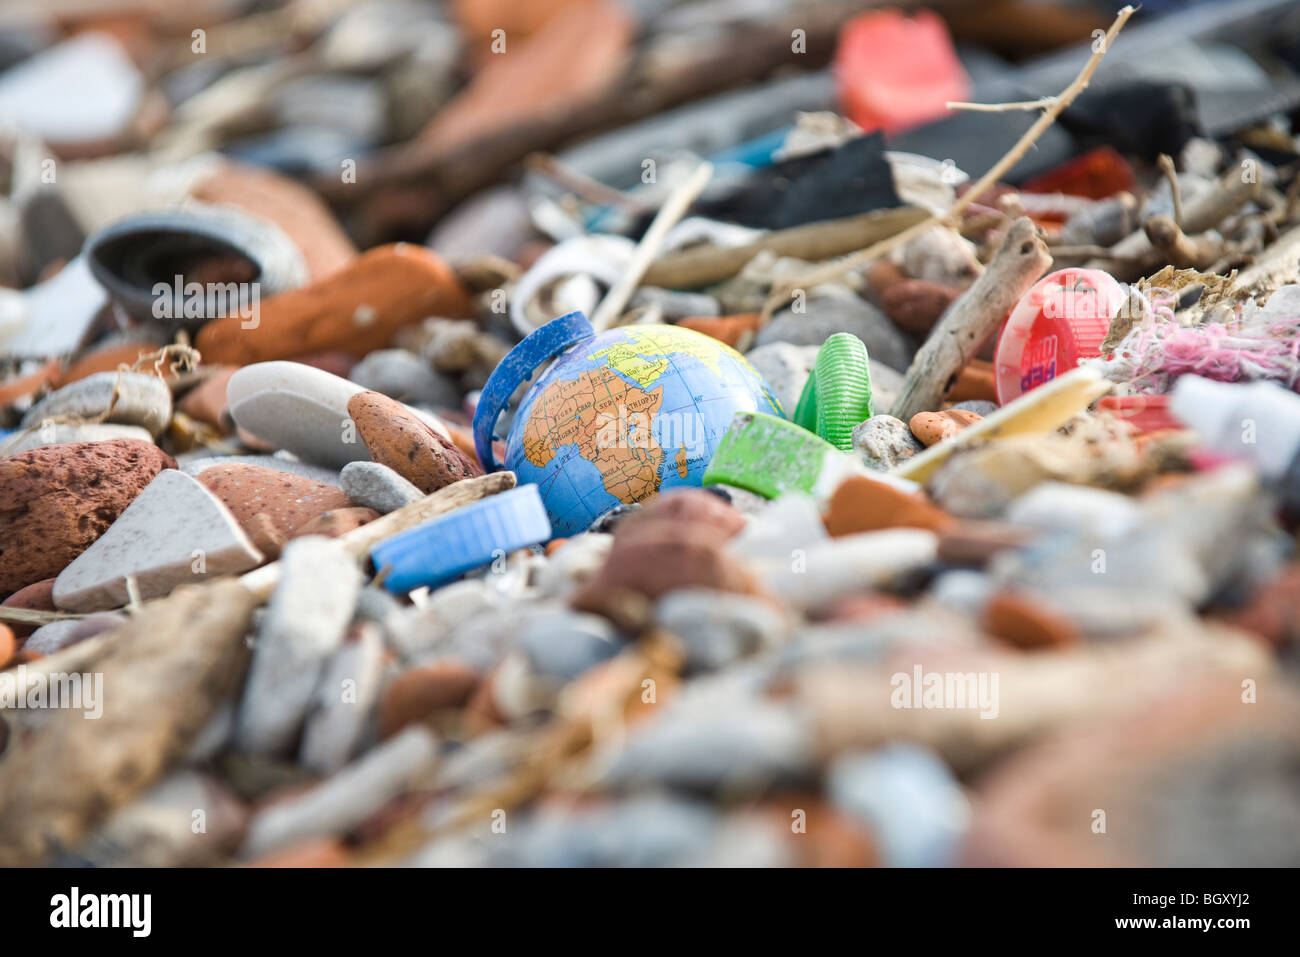 Globe surrounded and nearly covered by pile of trash - Stock Image